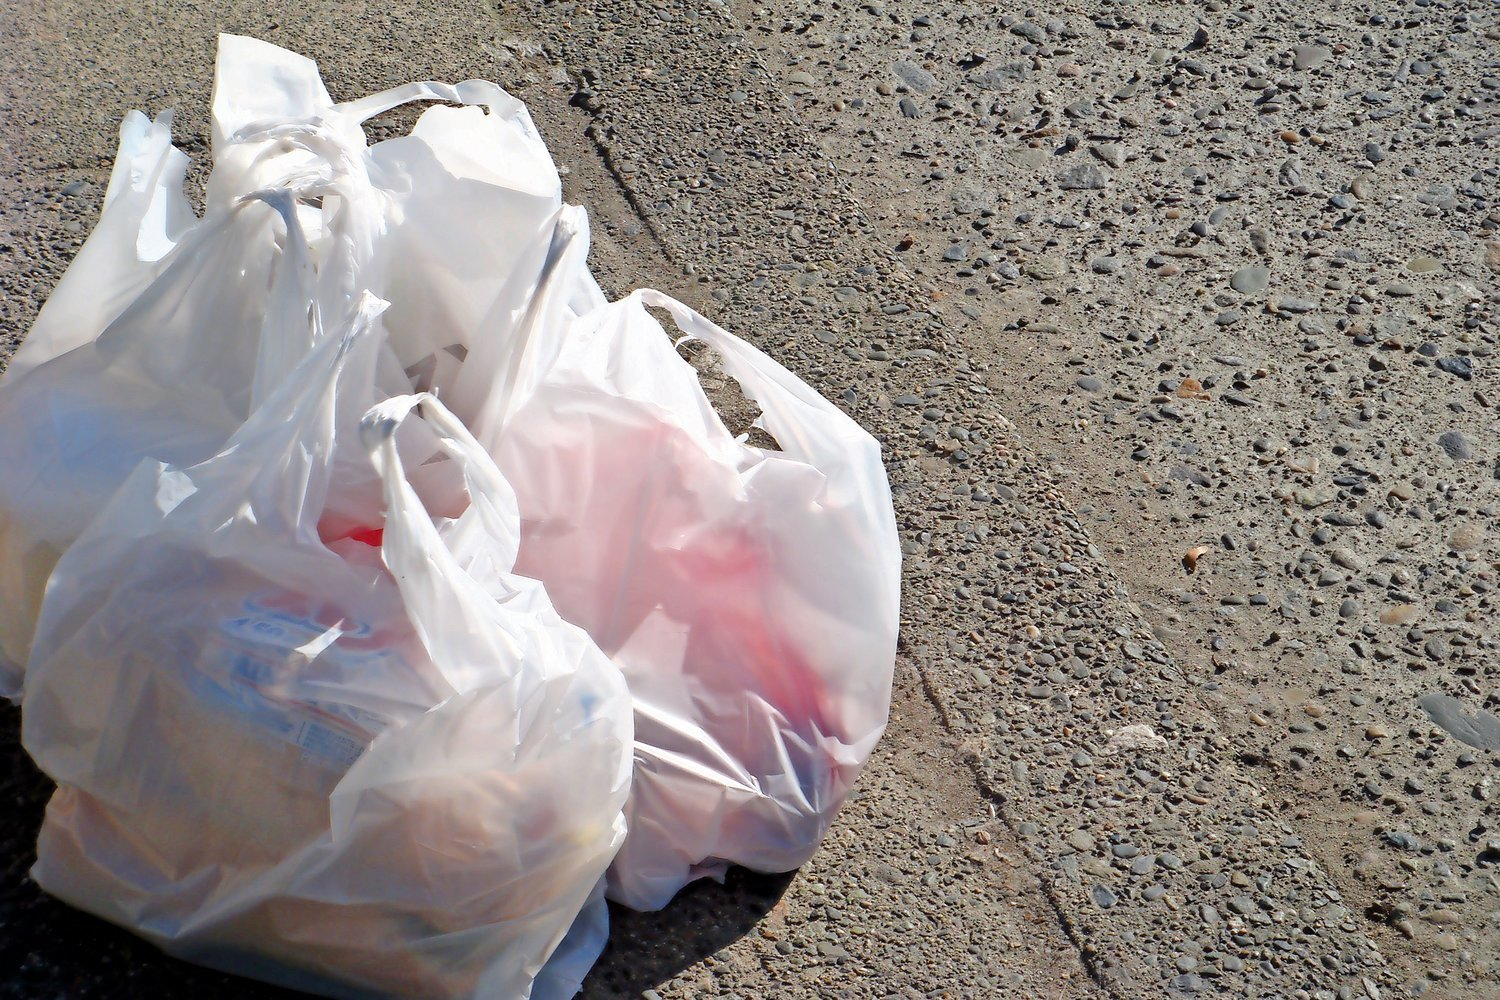 The state's ban on plastic bags goes into effect on March 1. Stores in the area such as Gourmet Glatt in Cedarhurst will provide reusable bags to customers.